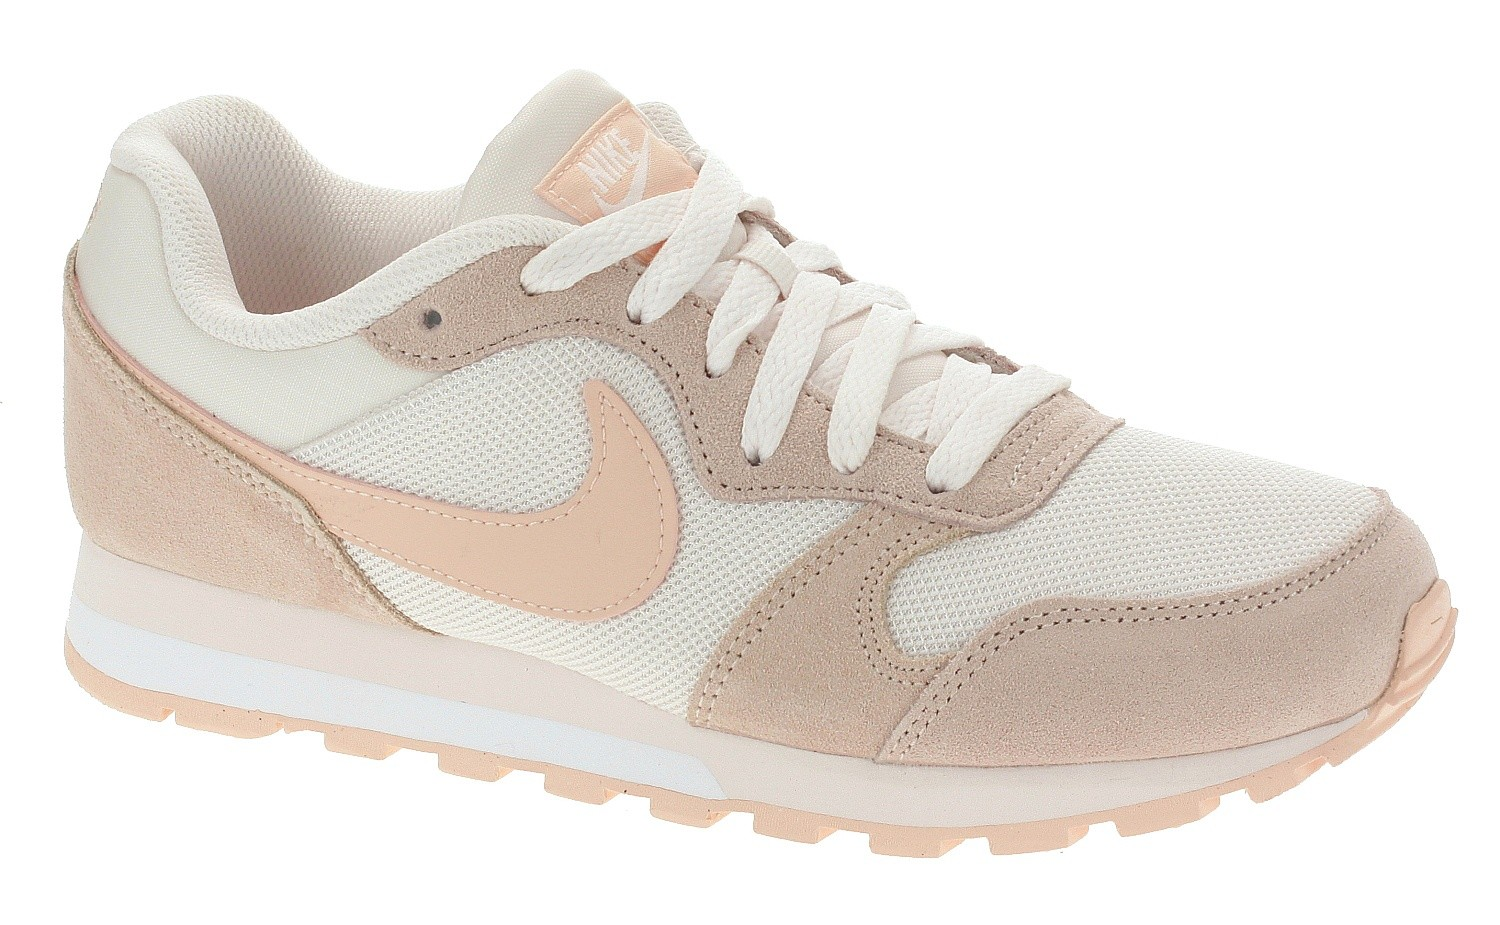 Nike MD Runner 2 SE Running Shoes Light Brown Women